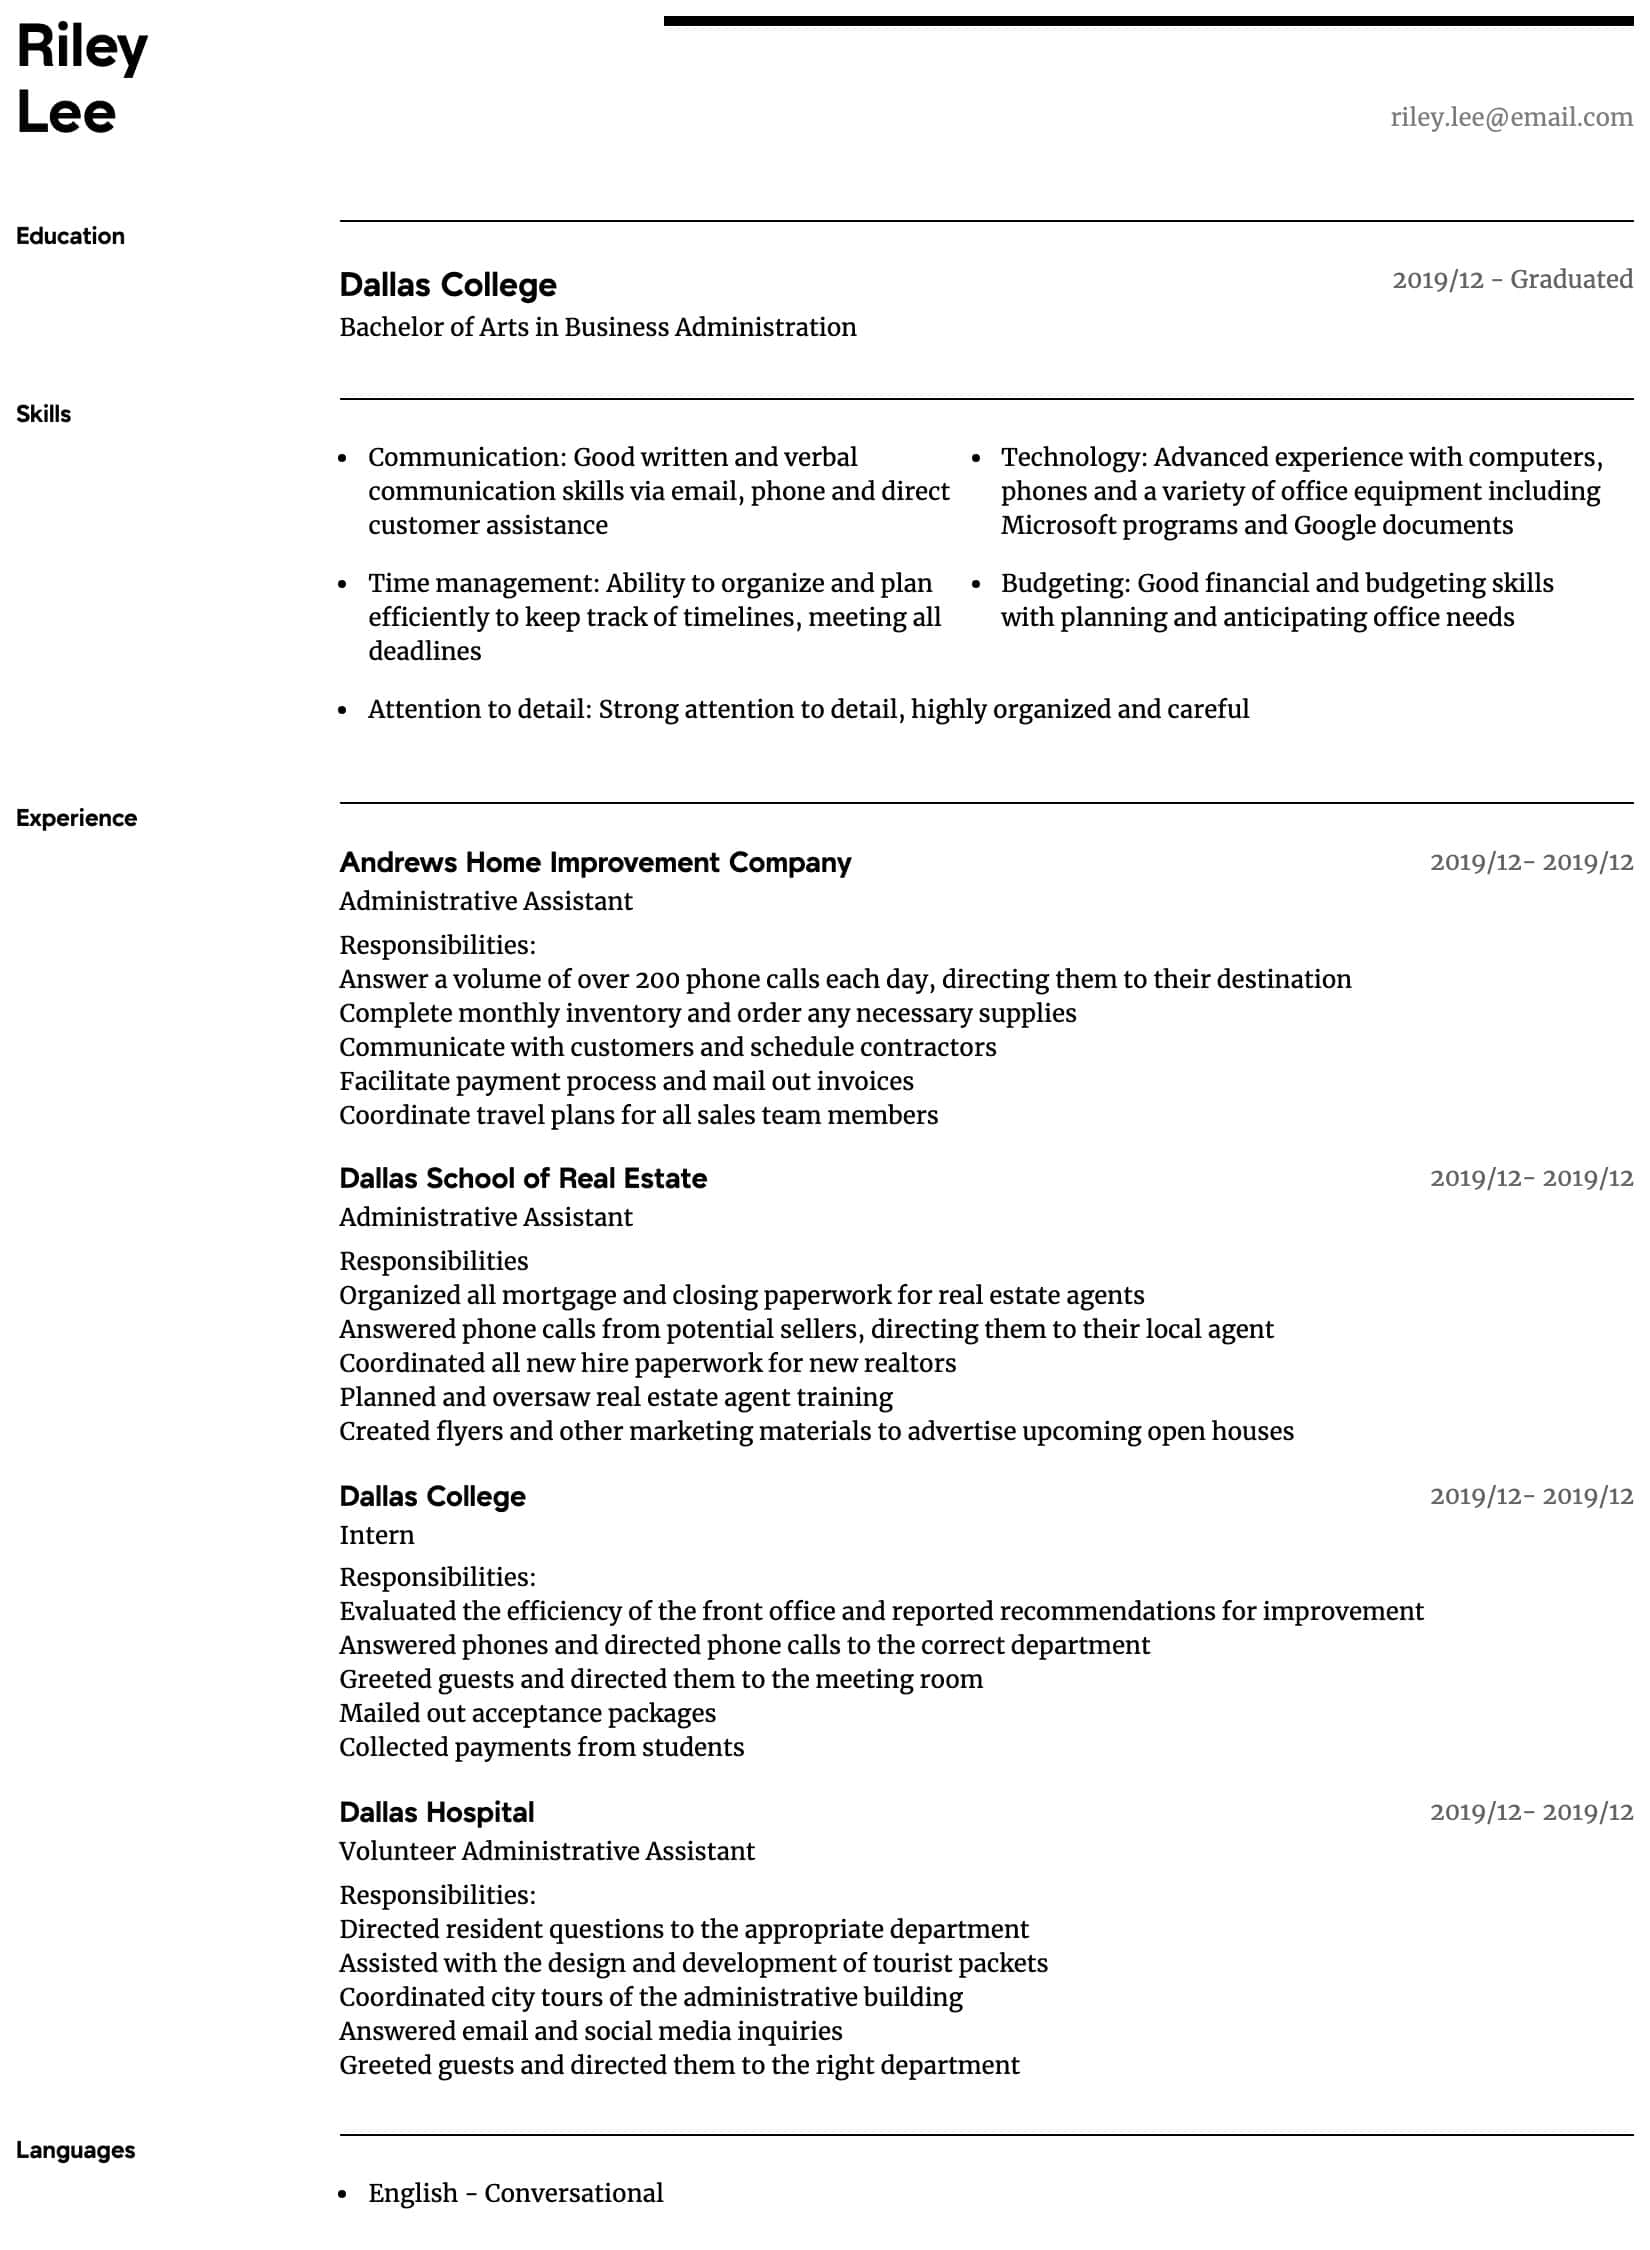 administrative assistant resume samples all experience levels format for front office Resume Resume Format For Front Office Assistant